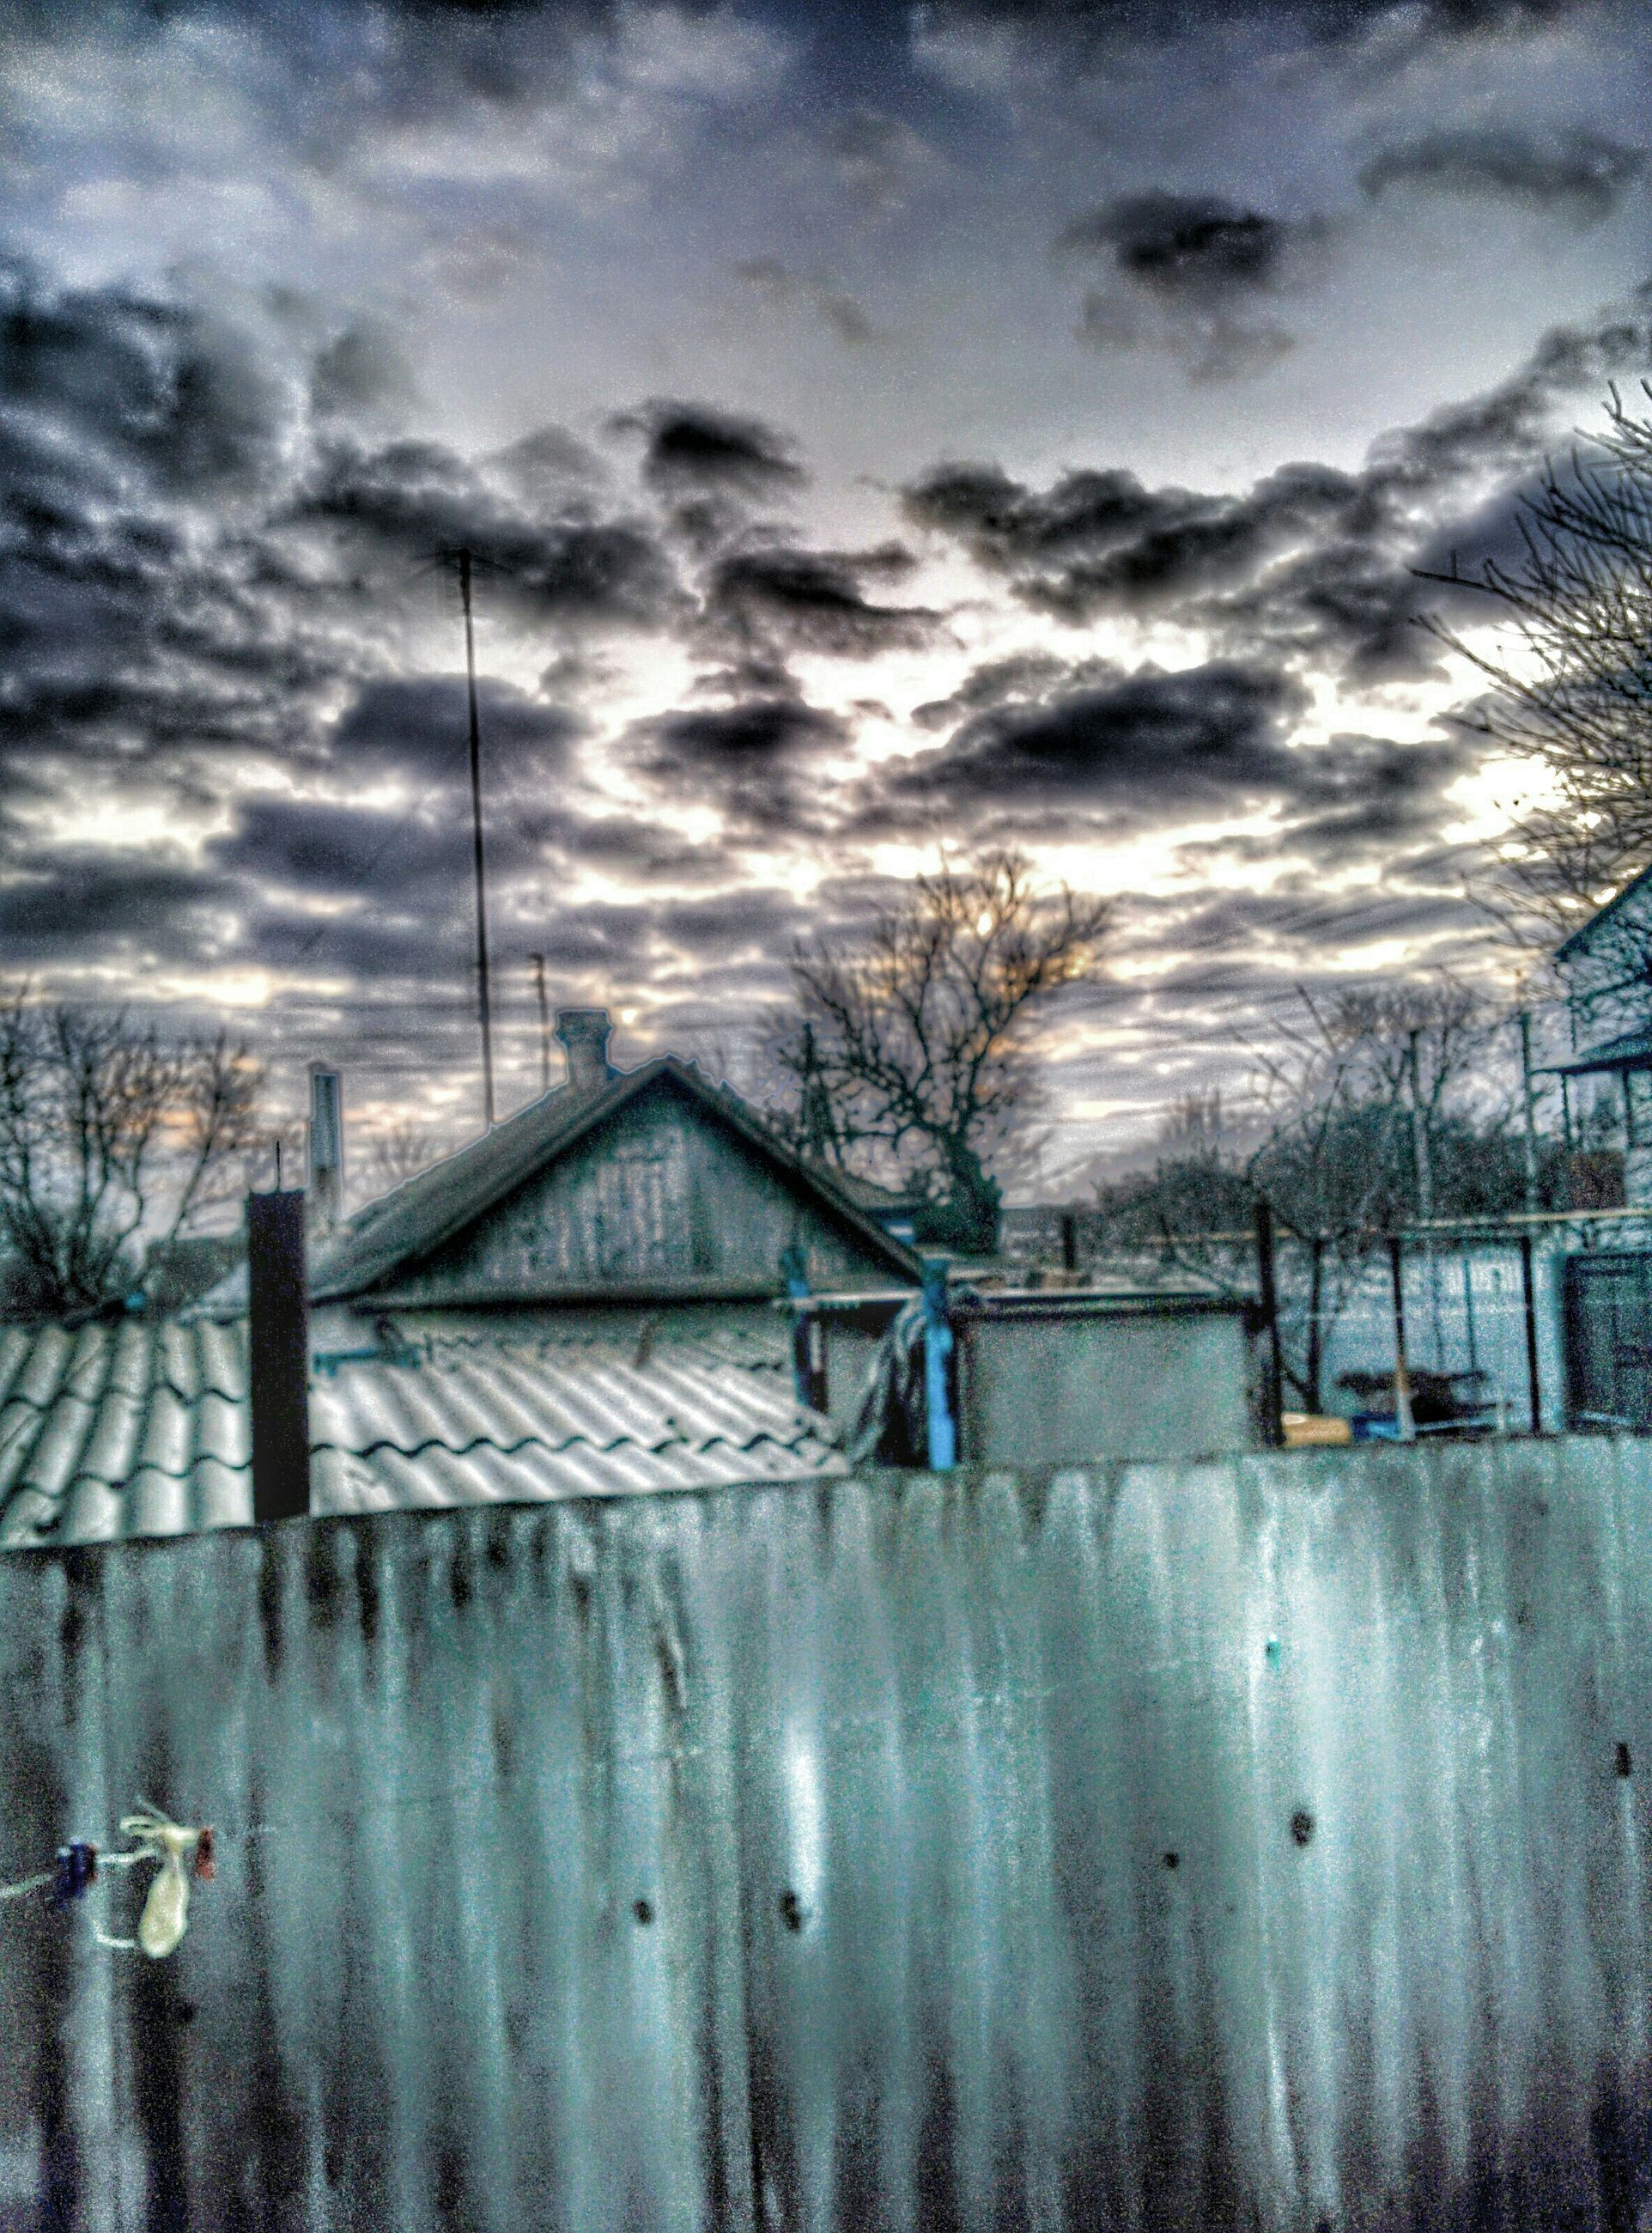 sky, cloud - sky, architecture, building exterior, built structure, cloudy, weather, house, cloud, fence, tree, bare tree, water, season, residential structure, sunset, no people, residential building, nature, outdoors